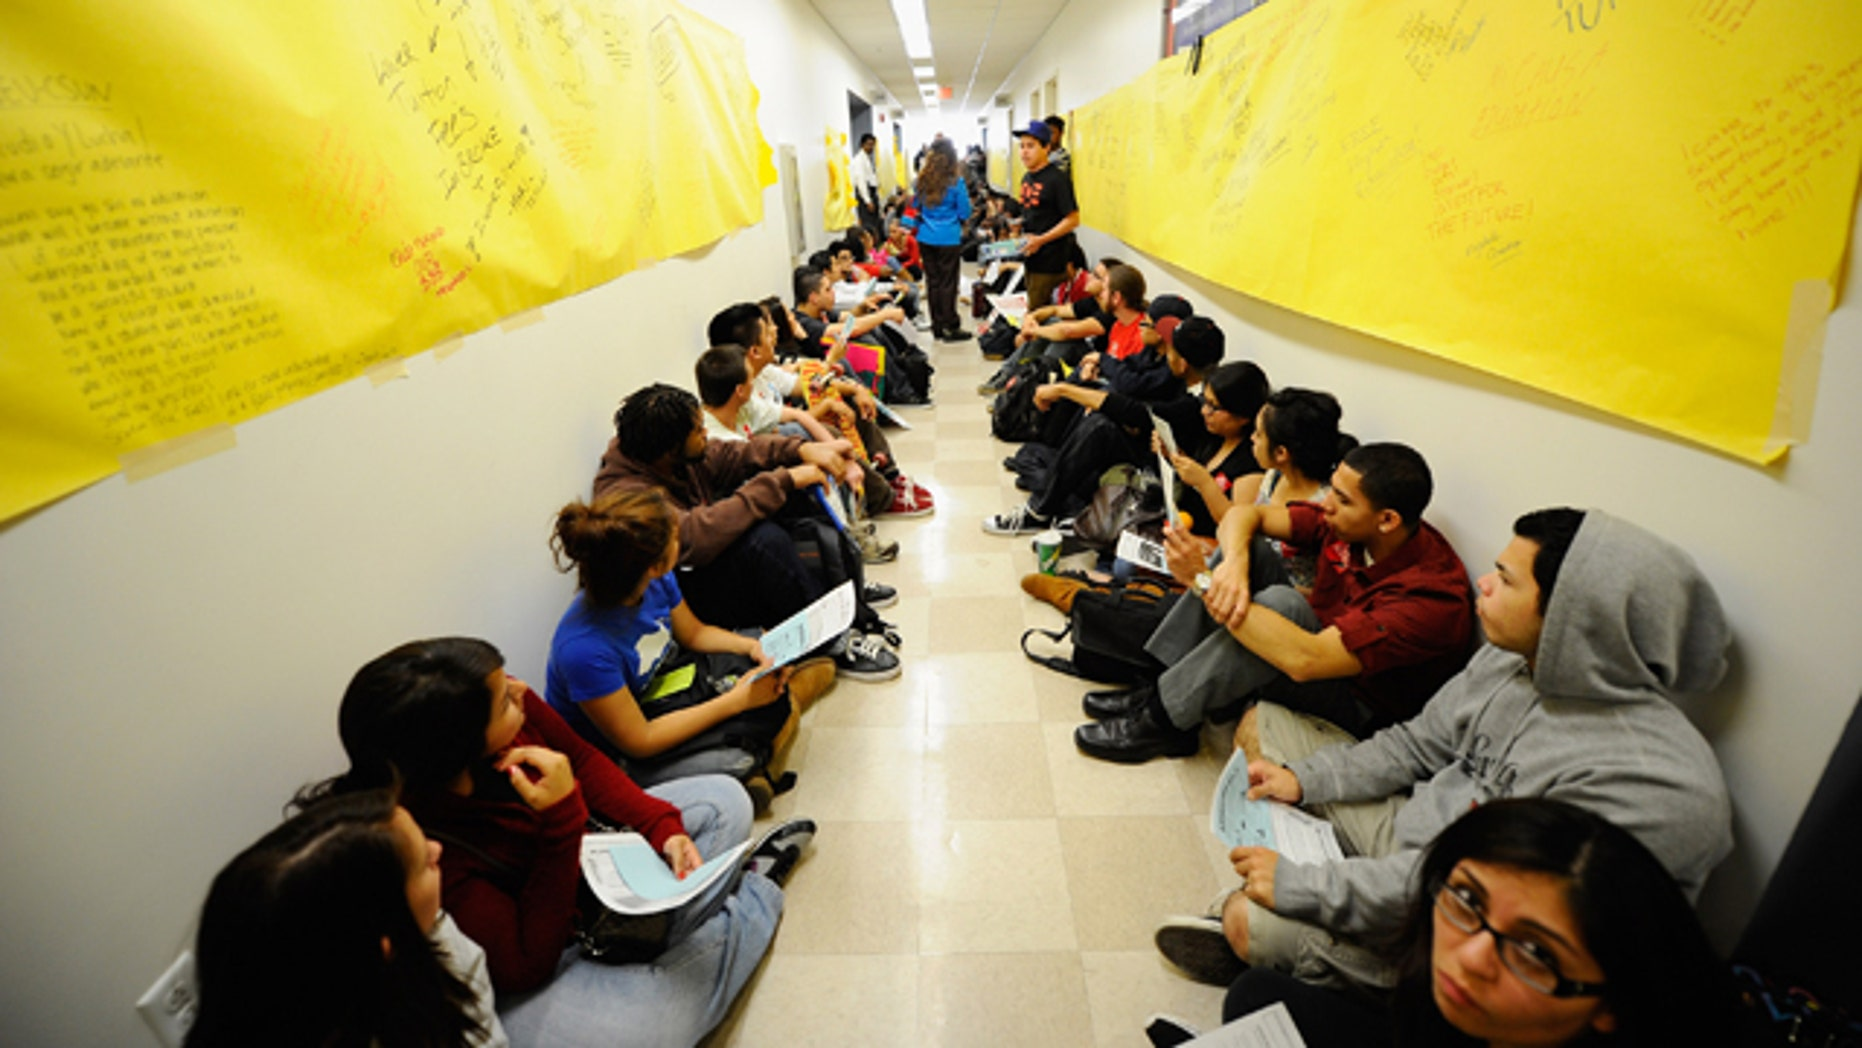 LOS ANGELES, CA - APRIL 13:  Students and faculty members stage a sit-in in front of the school president's office at California State University, Northridge, demonstrating against proposed budget cuts at all 23 Cal State University campuses statewide on April 13, 2011 in Los Angeles, California. Teachers and students were protesting a plan to slash the Cal State budget to save money by cutting enrollment at Cal State campuses by 10,000 students, and cut $11 million from the chancellor's office and shrink campus funding by $300 million.  (Photo by Kevork Djansezian/Getty Images)